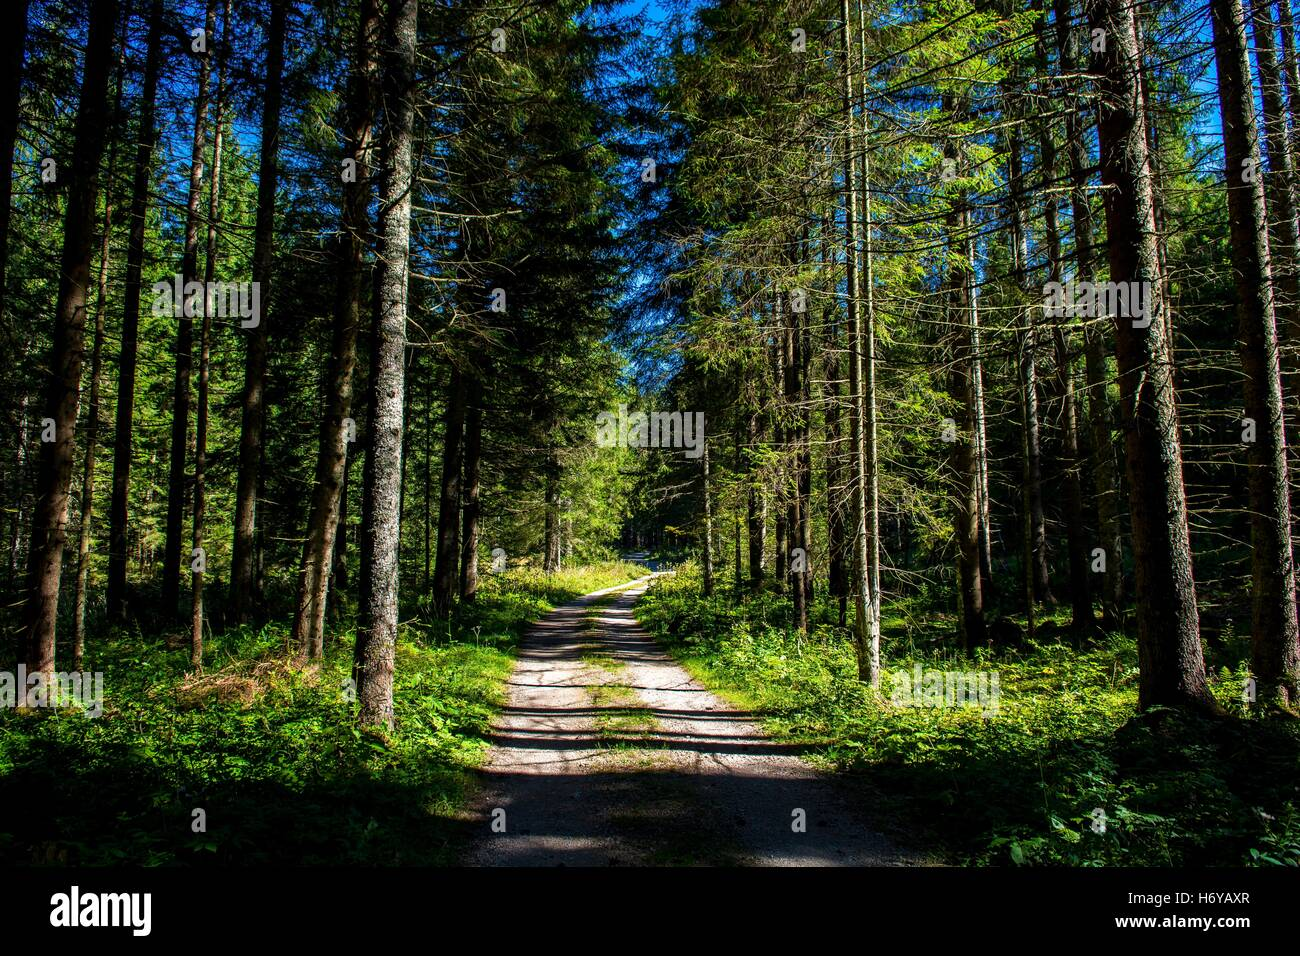 Gravel Road through Sunlit Conifer Forest in Austria - Stock Image